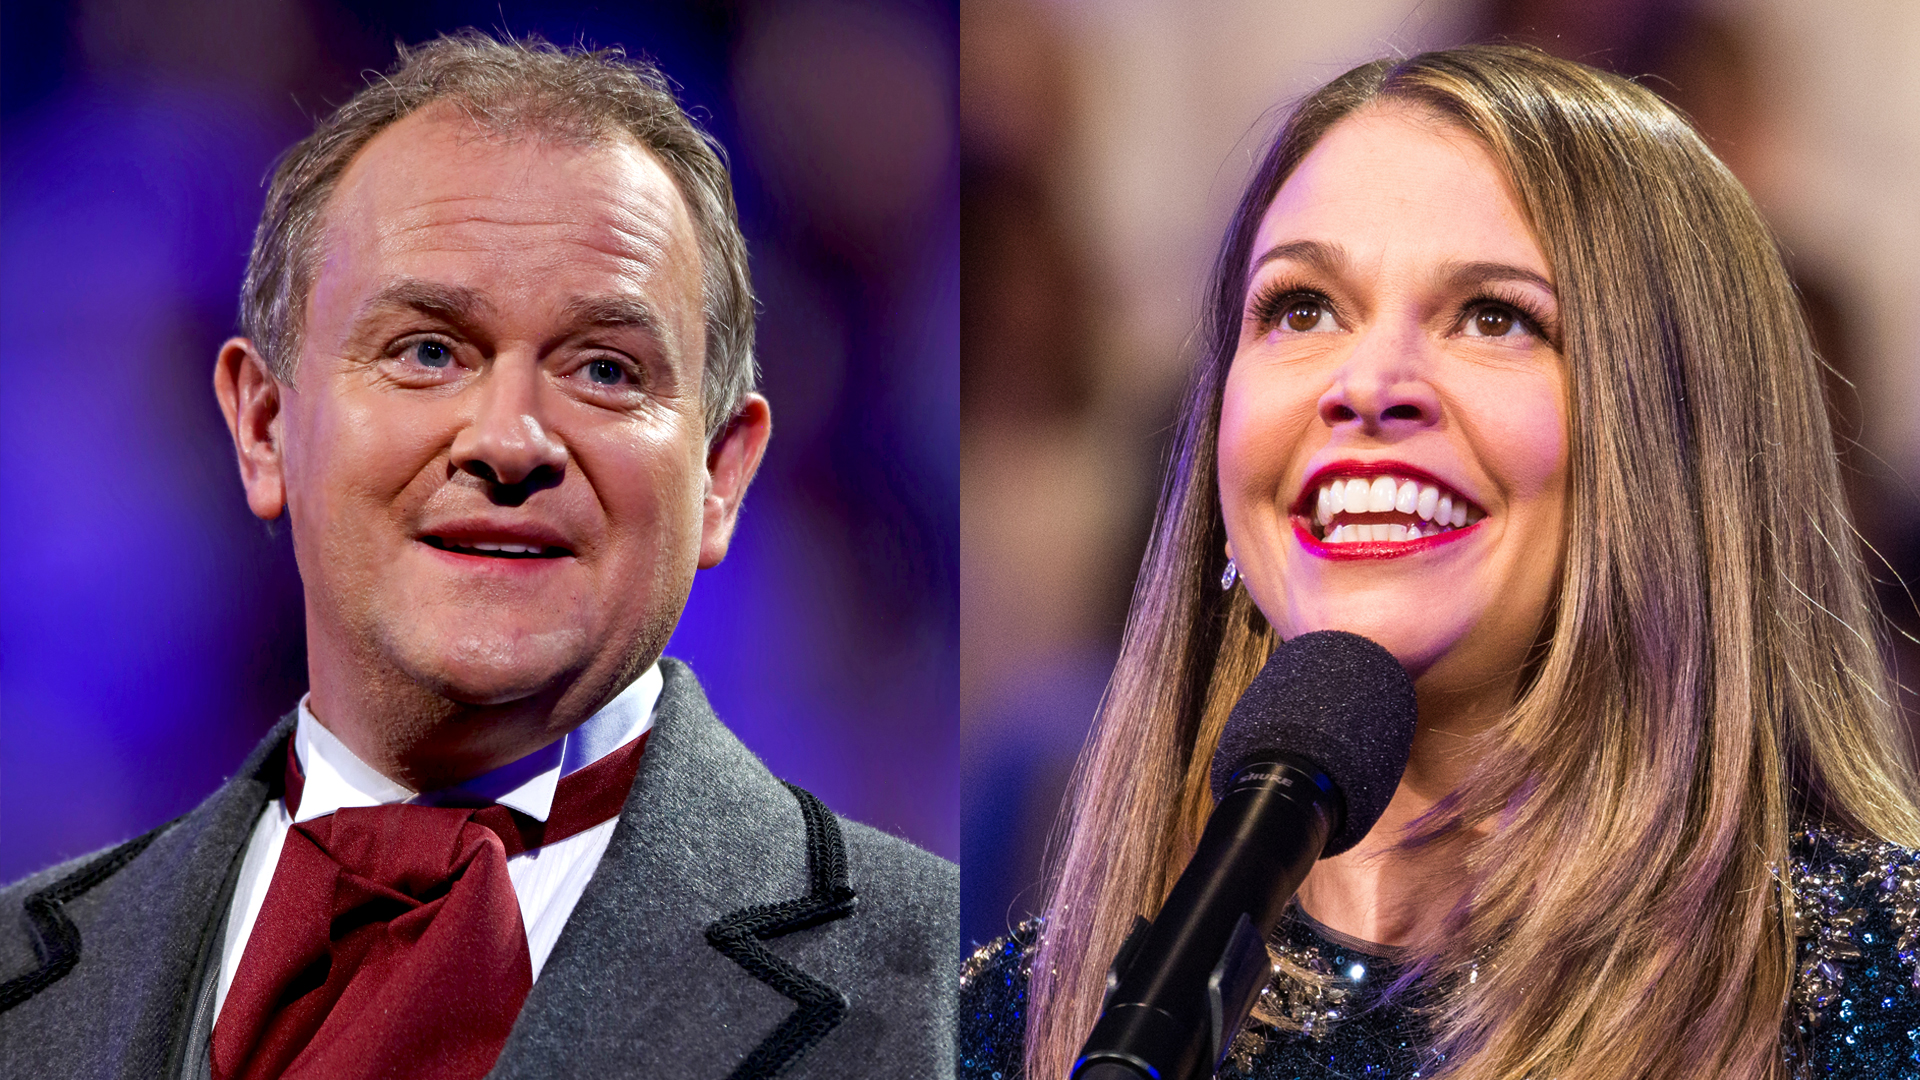 Hugh Bonneville and Sutton Foster